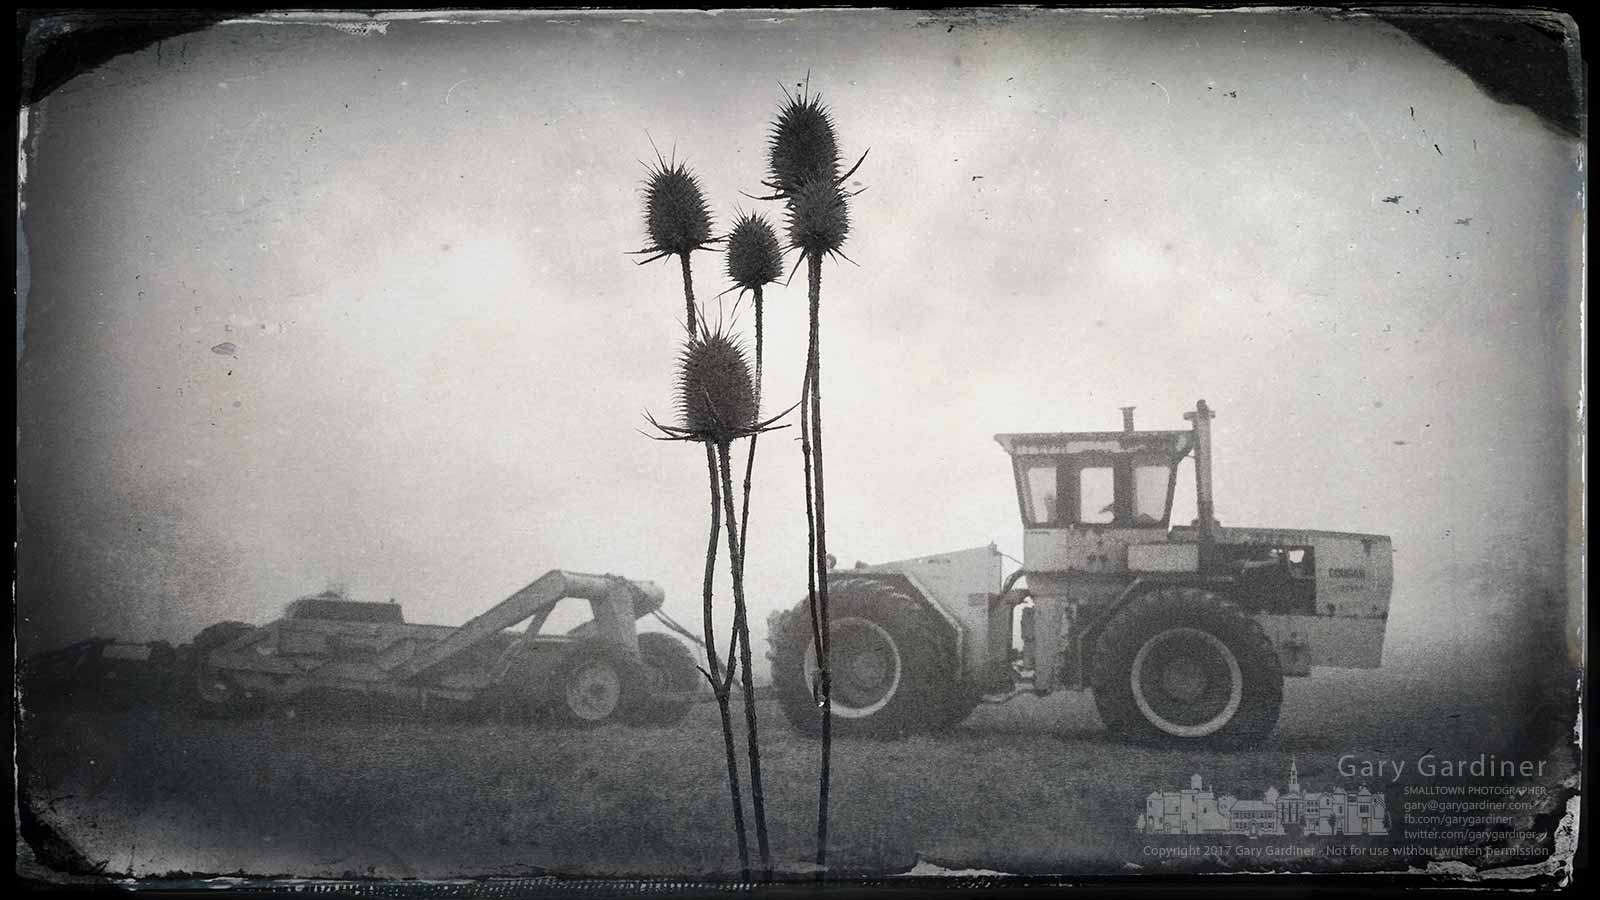 A dried thistle plant stands moistened in a heavy morning fog obscuring one of the tractors on the Braun Farm in the iPhone photo. My final Photo for Feb. 20, 2017.